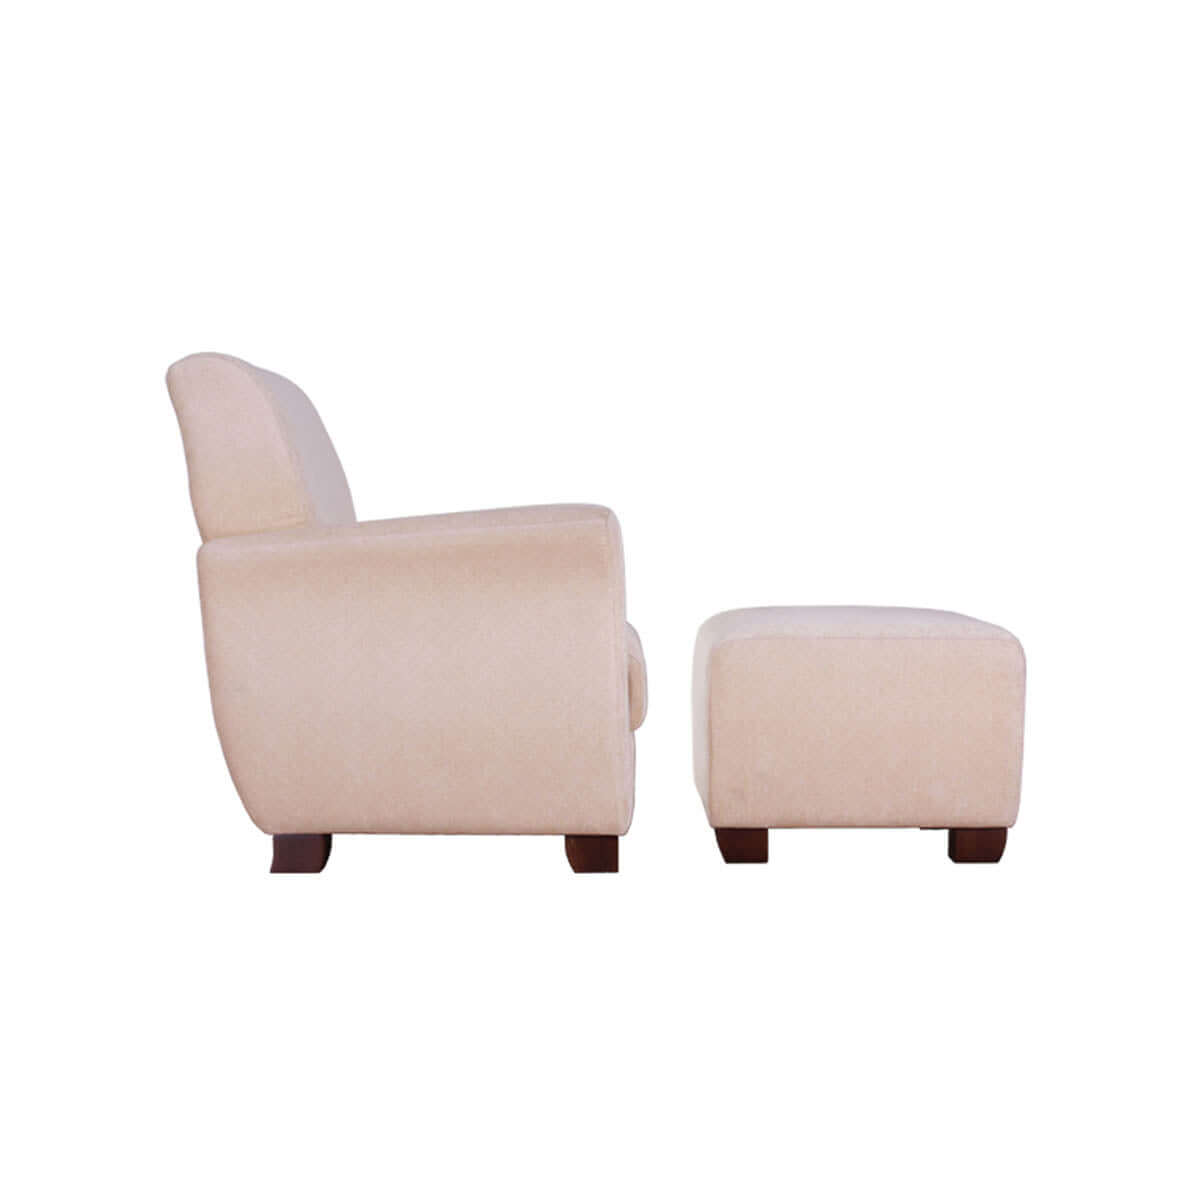 chair and ottoman sleek round